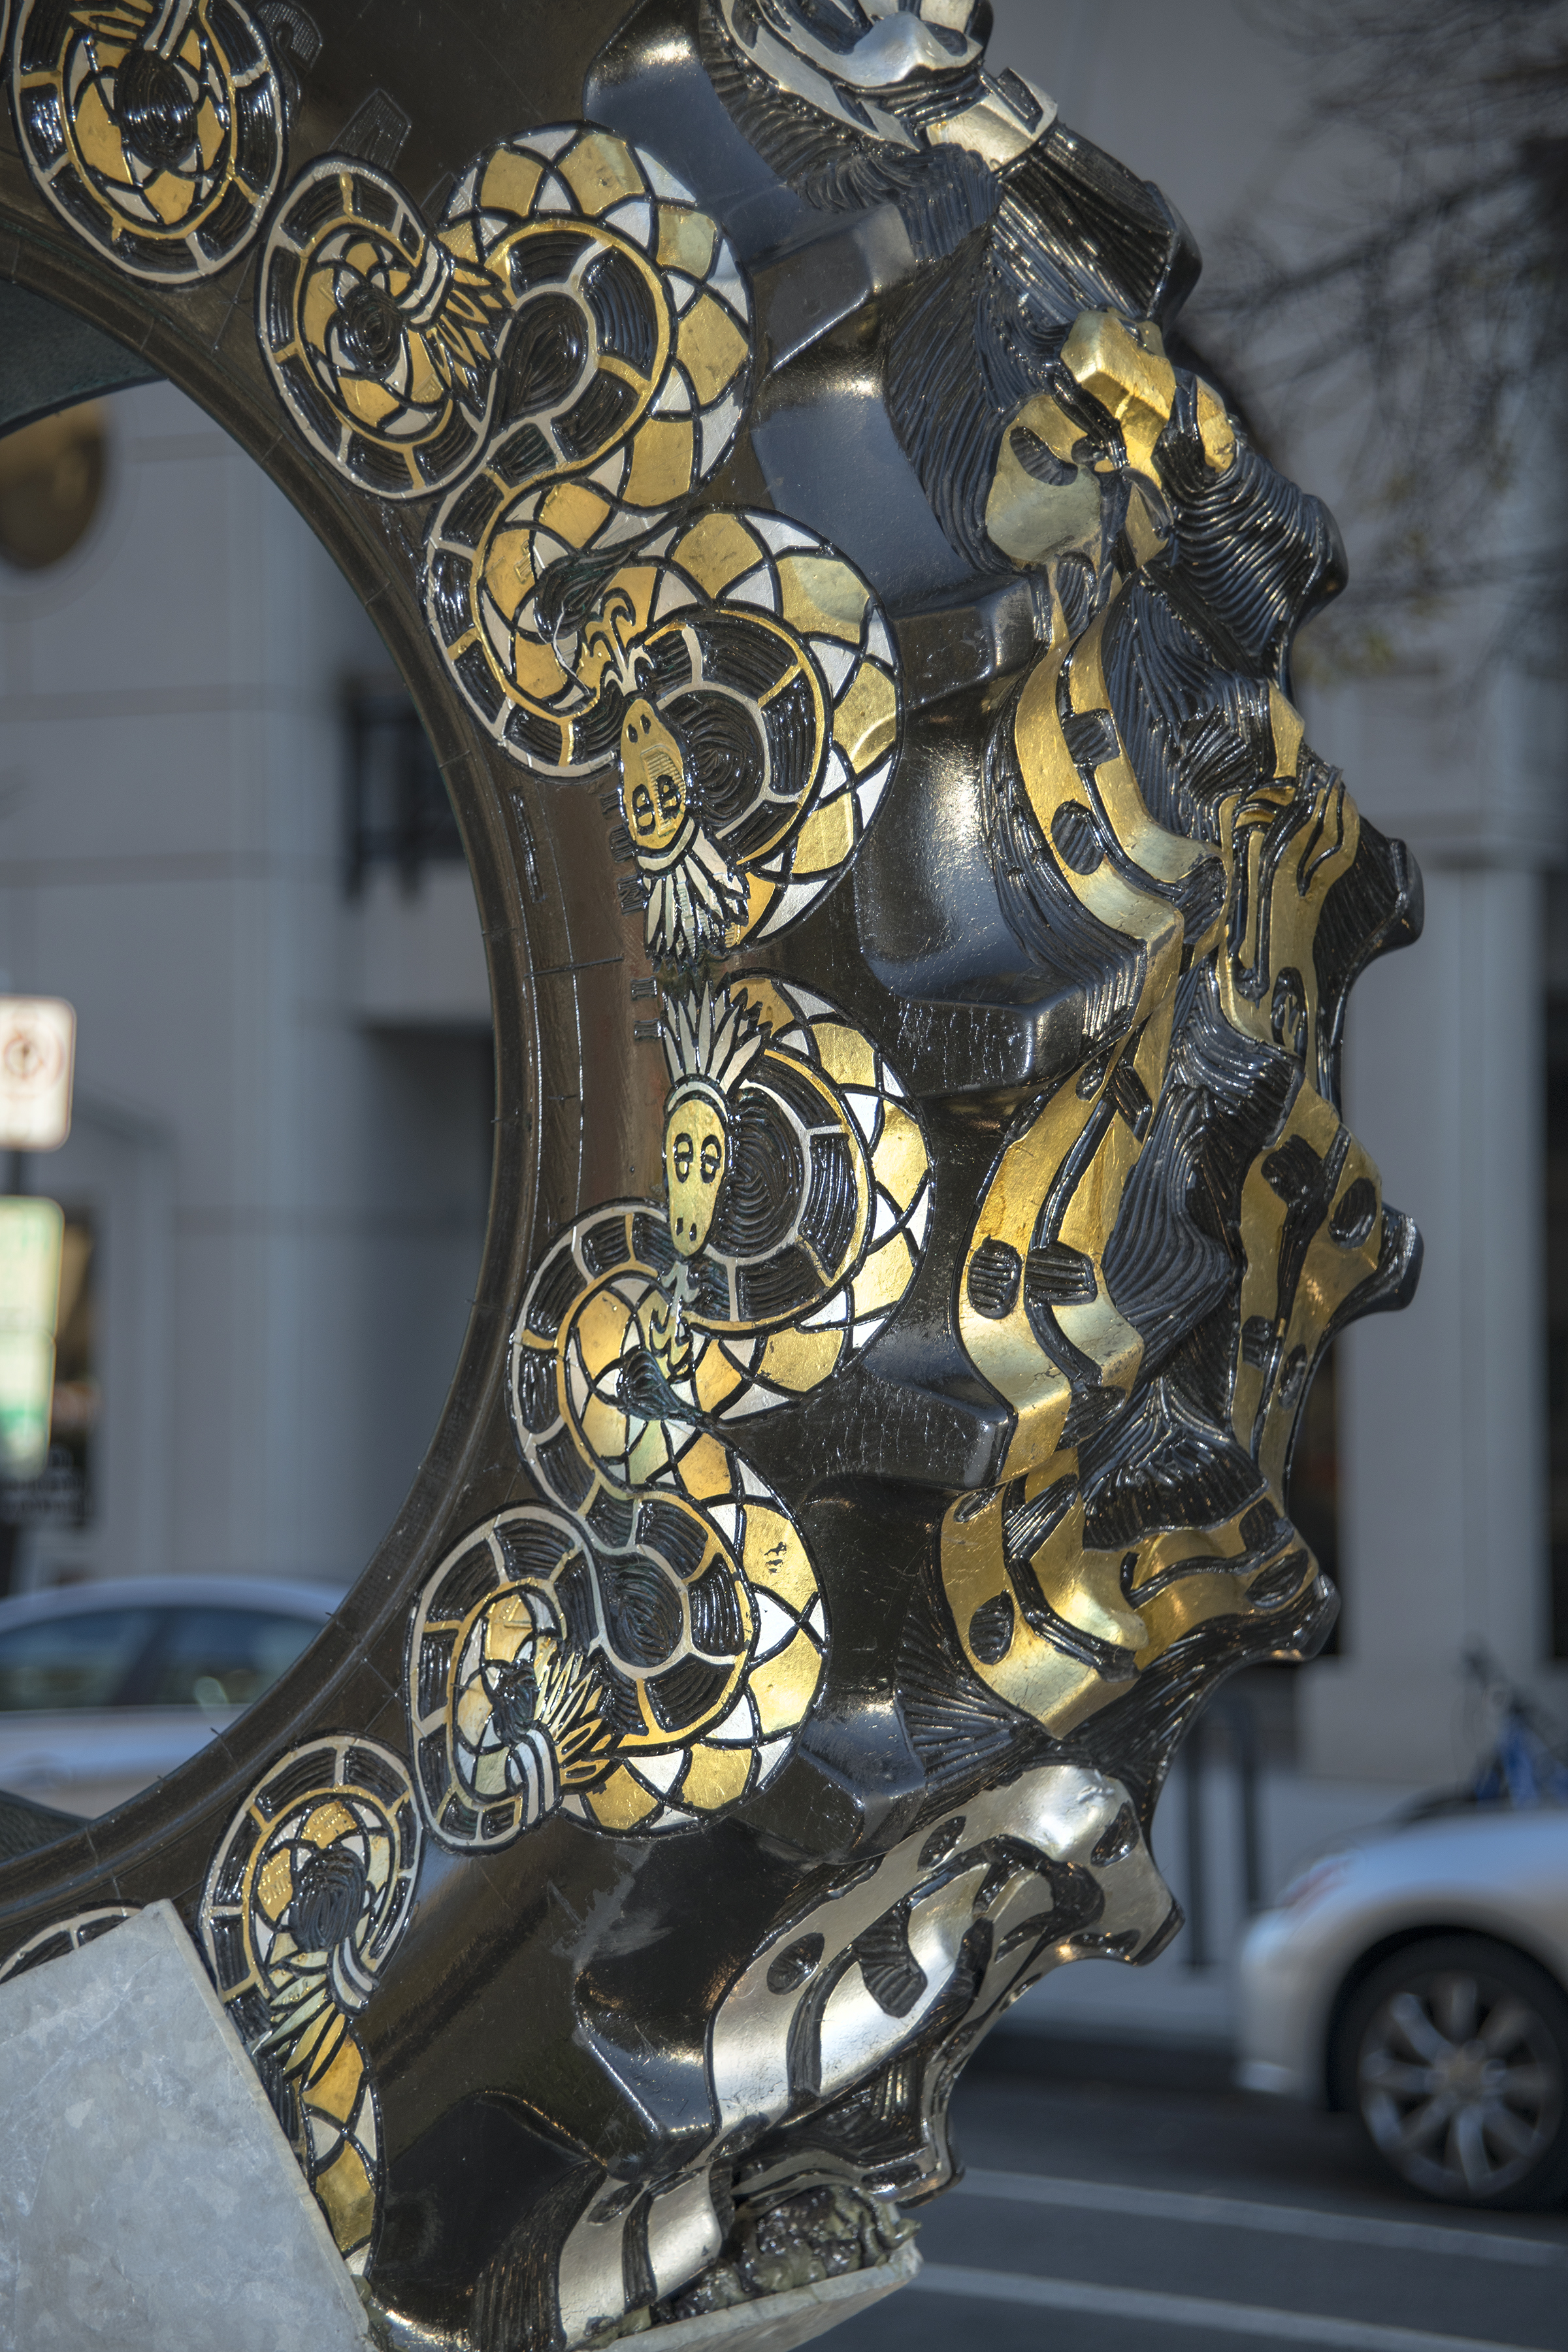 "Detail of Bestabee Romero's ""Signals of a Long Road Together"" installation on New York Avenue in Washington, D.C; this tire shows a snake carved into the tire treads and face, it coils around the full tire, the snake is painted gold and silver."